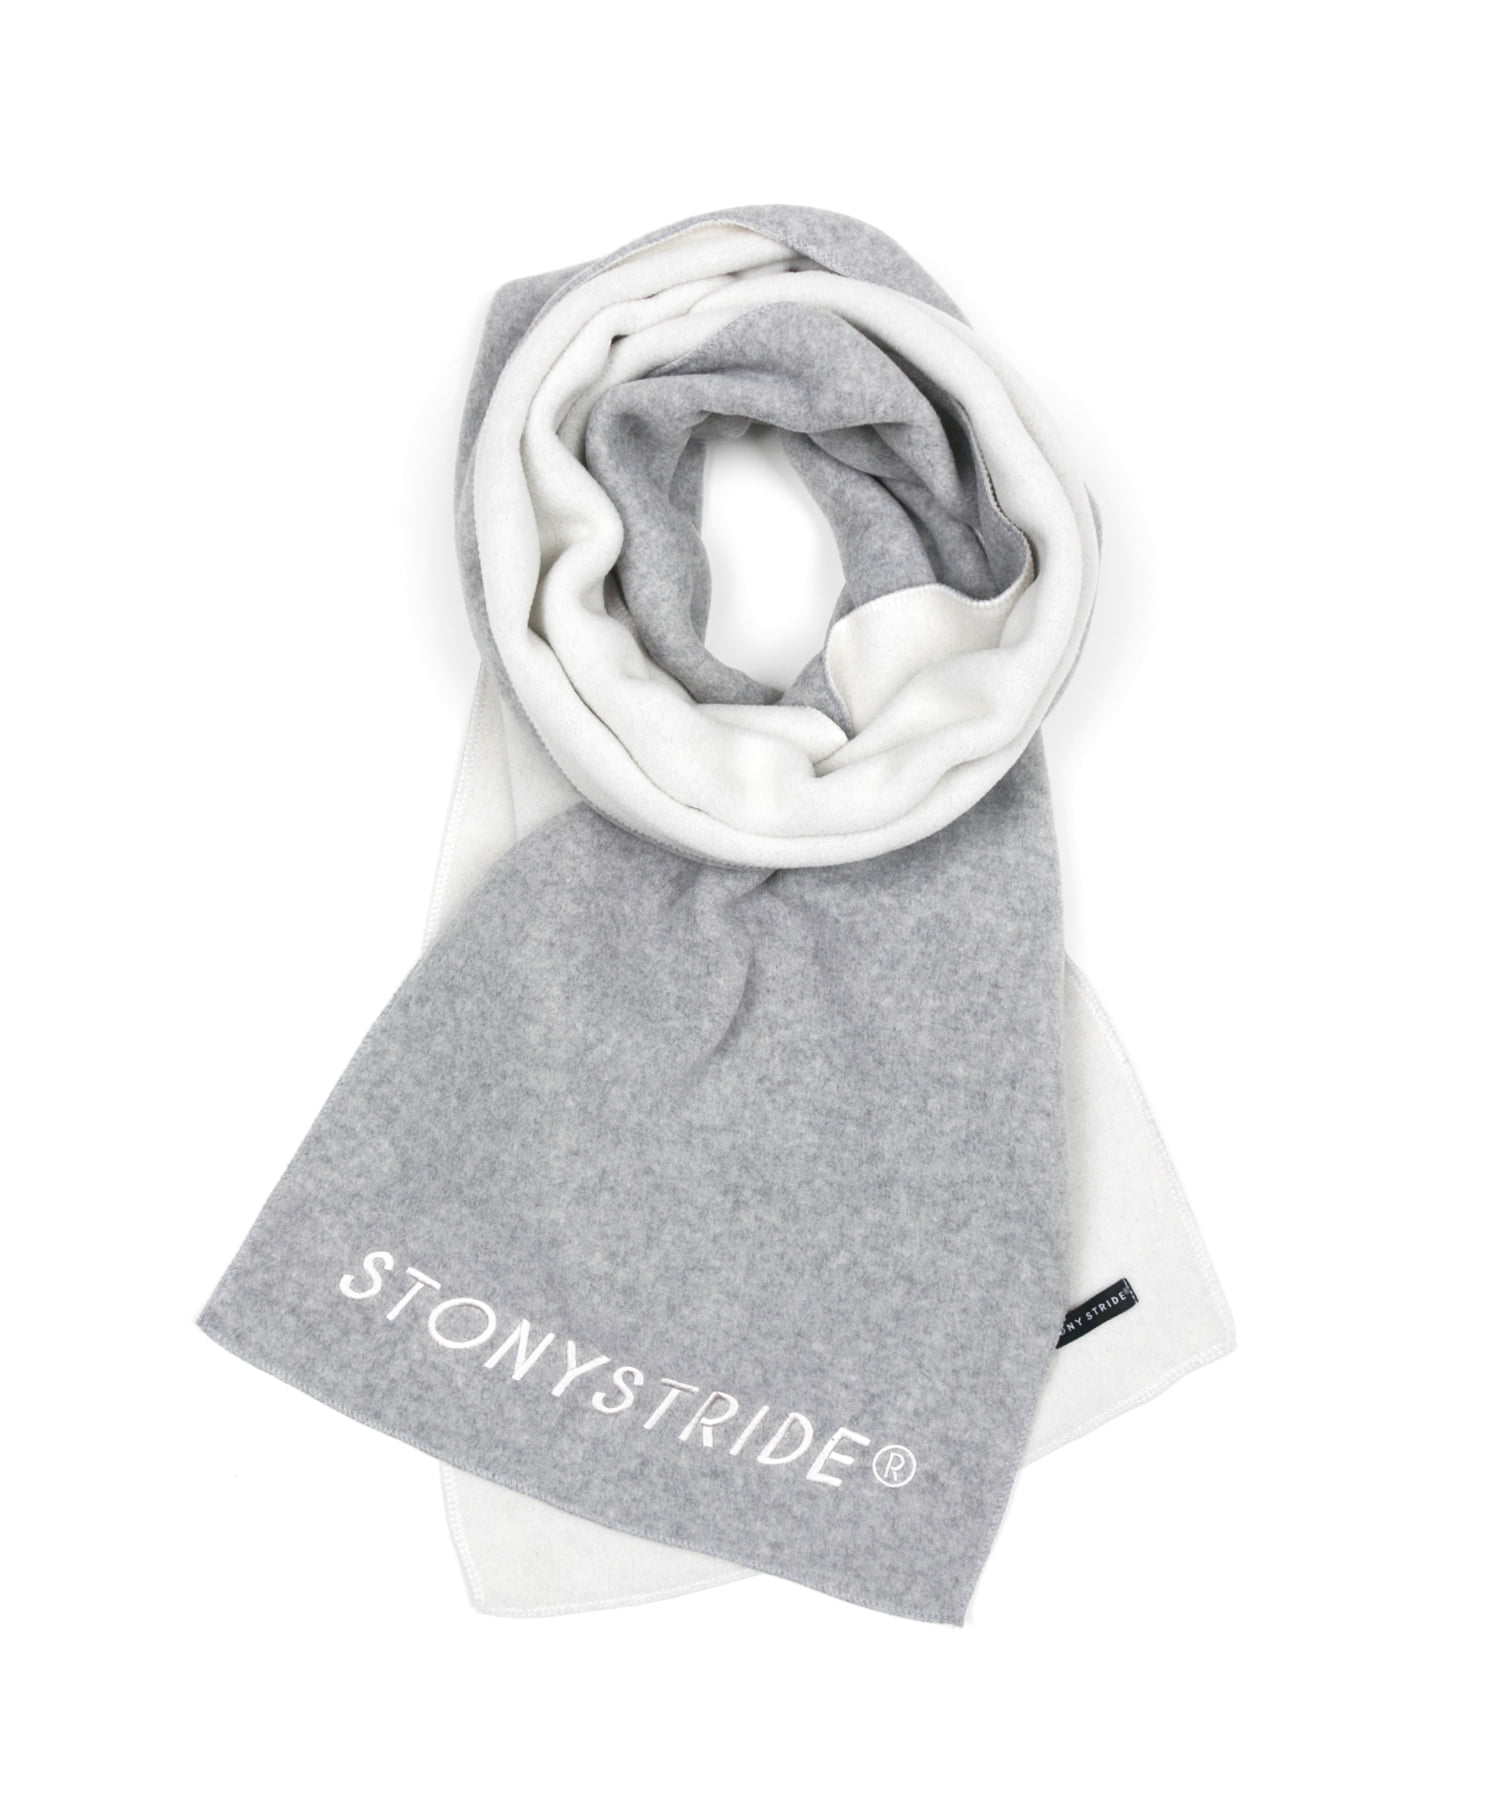 TWO TONE FLEECE MUFFLER - GRAY